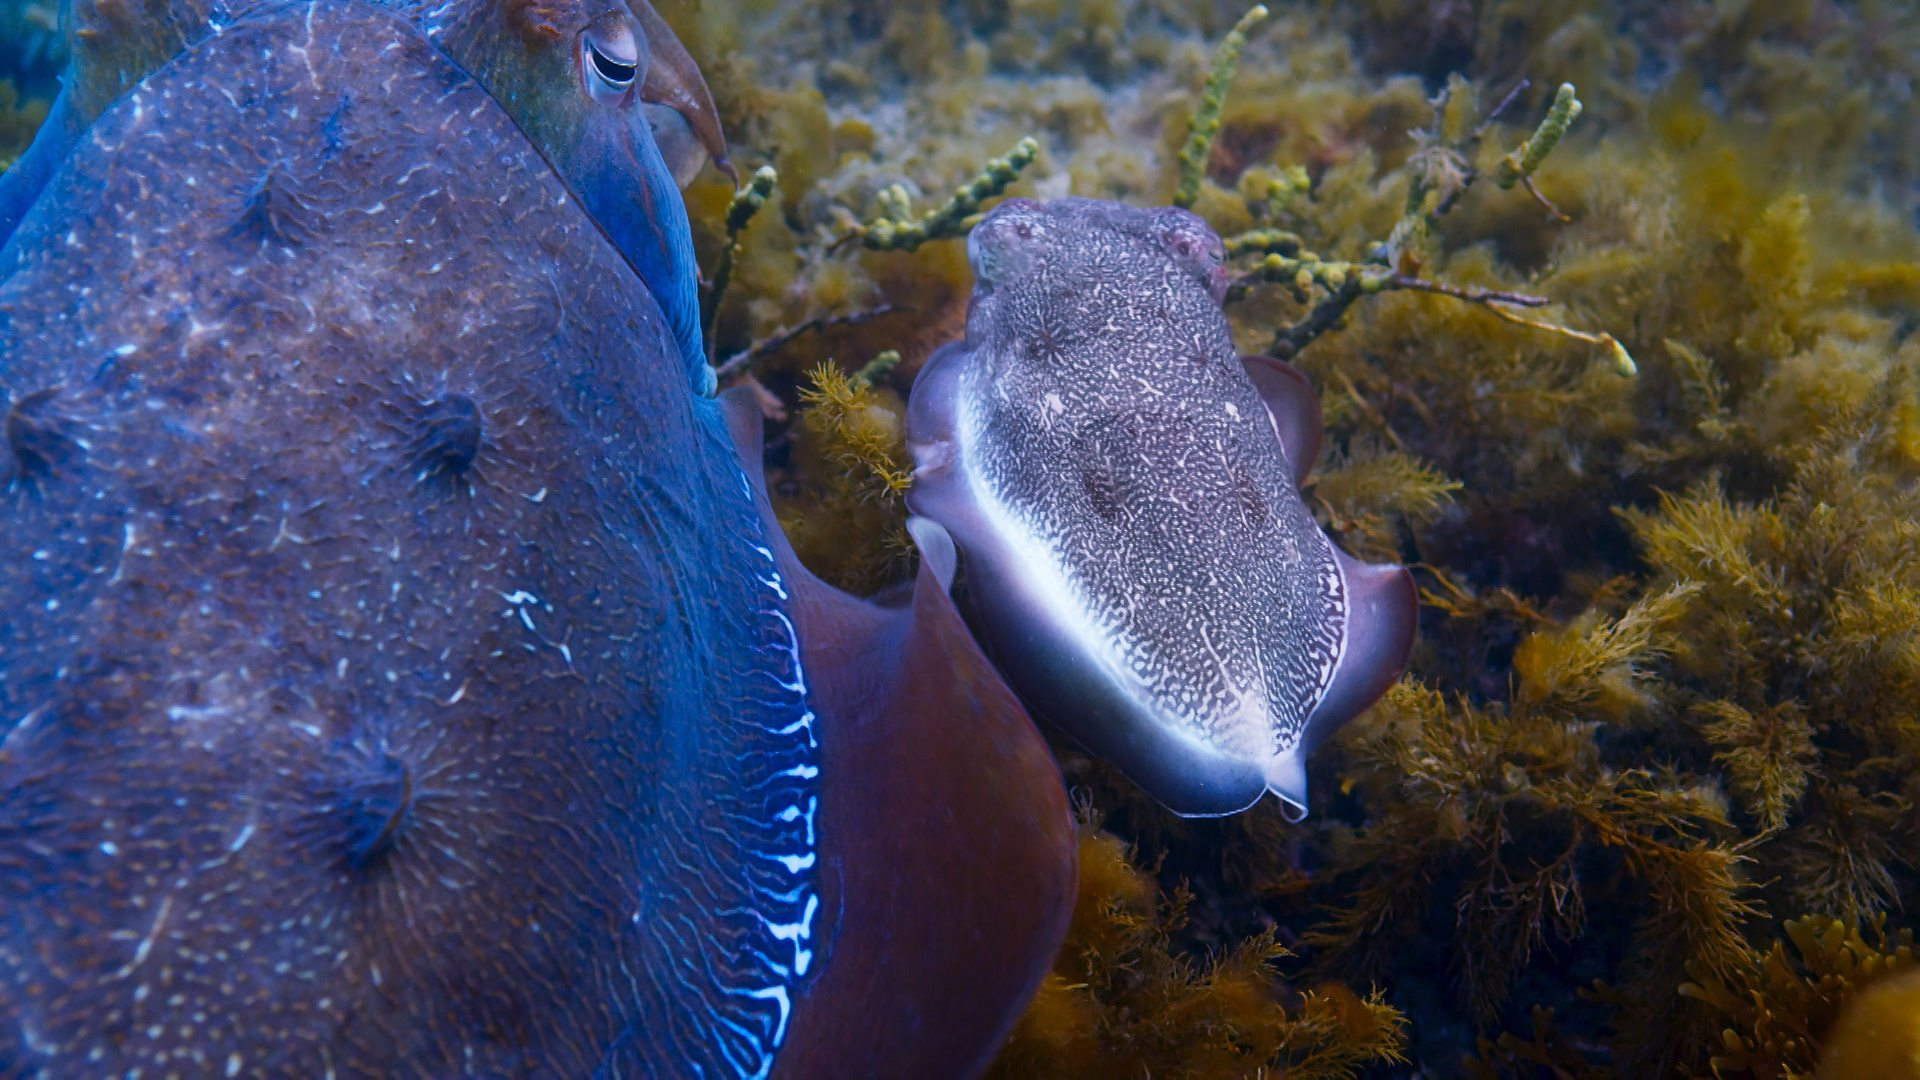 BBC One - Blue Planet II - Filming the giant cuttlefish aggregation